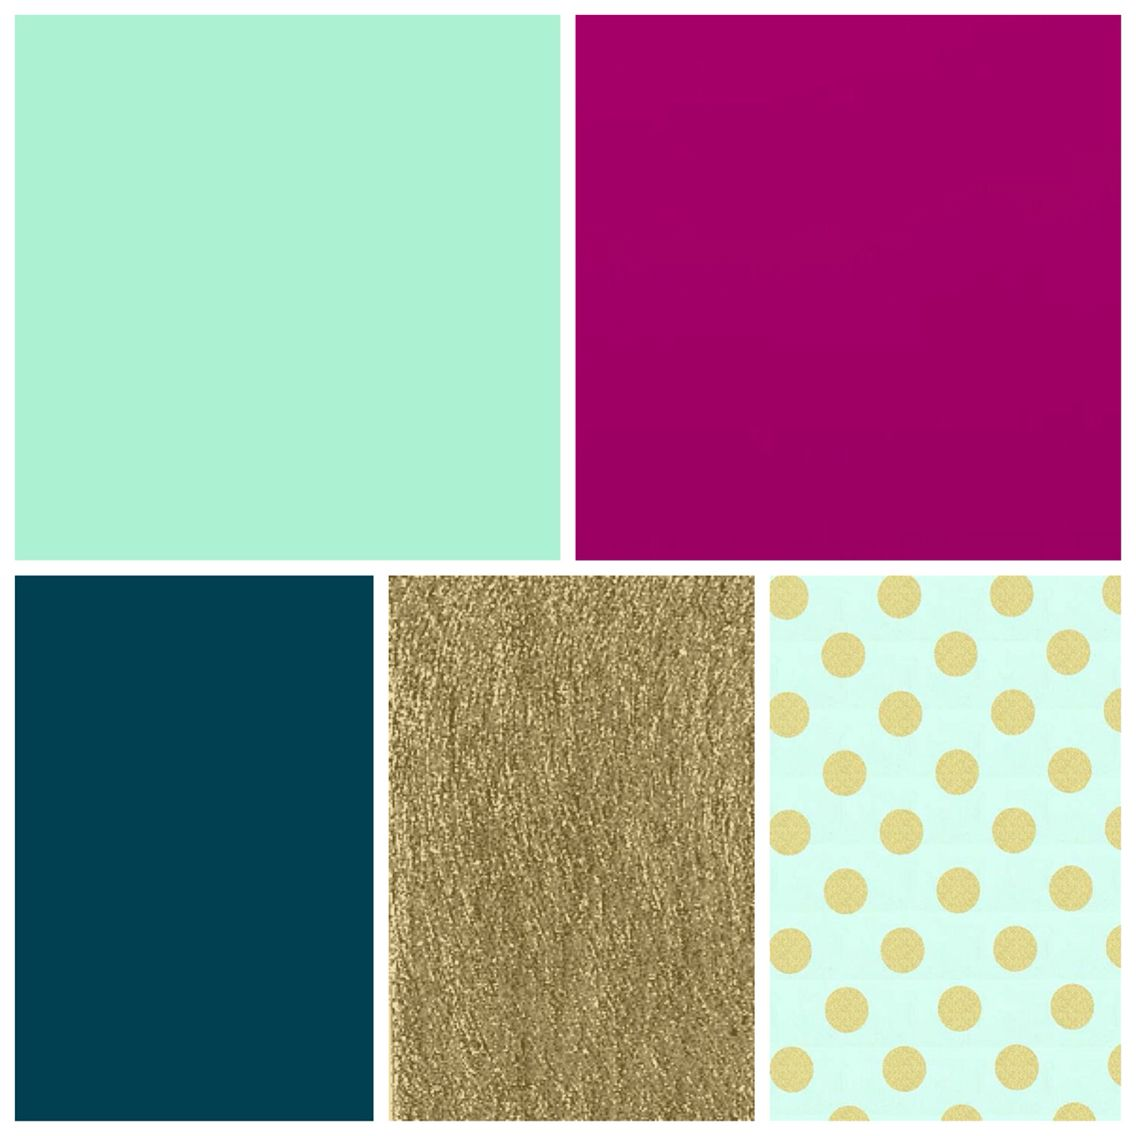 Bedroom color schemes gold - Mint Fuschia Dark Teal Gold Bedroom Colors